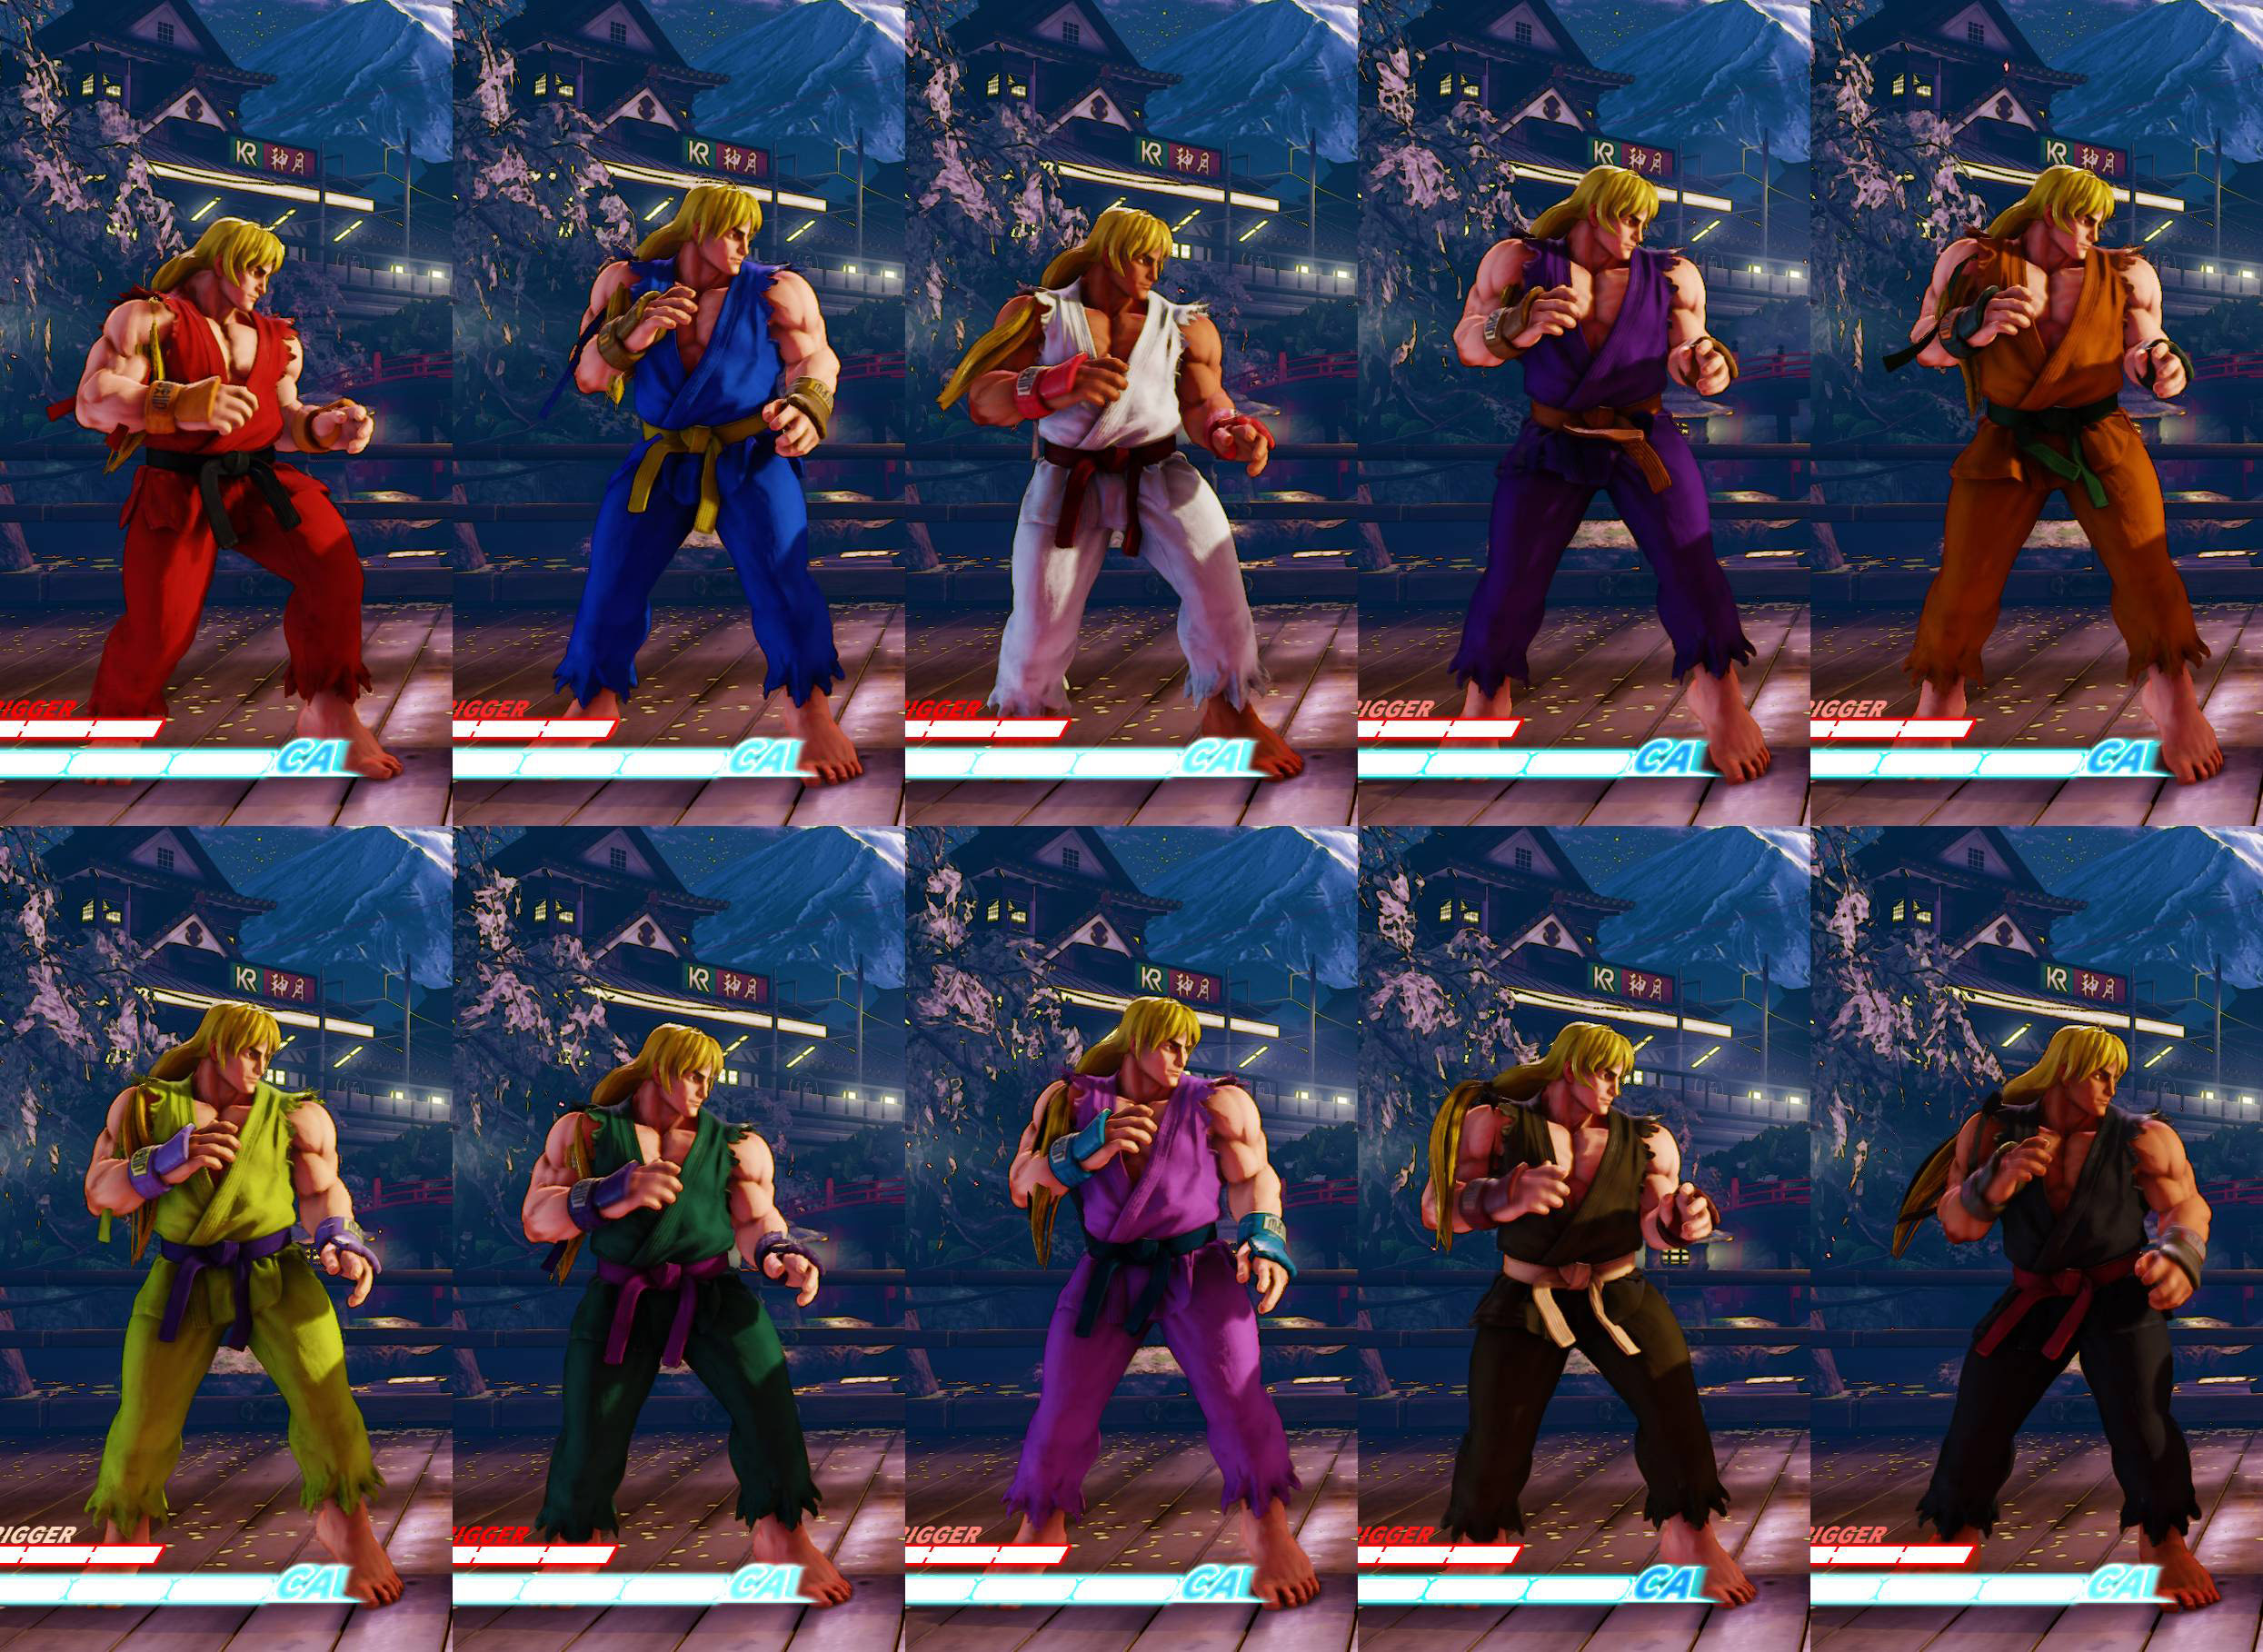 Ryu And Ken S Street Fighter 5 Alpha Costume Colors 1 Out Of 2 Image Gallery